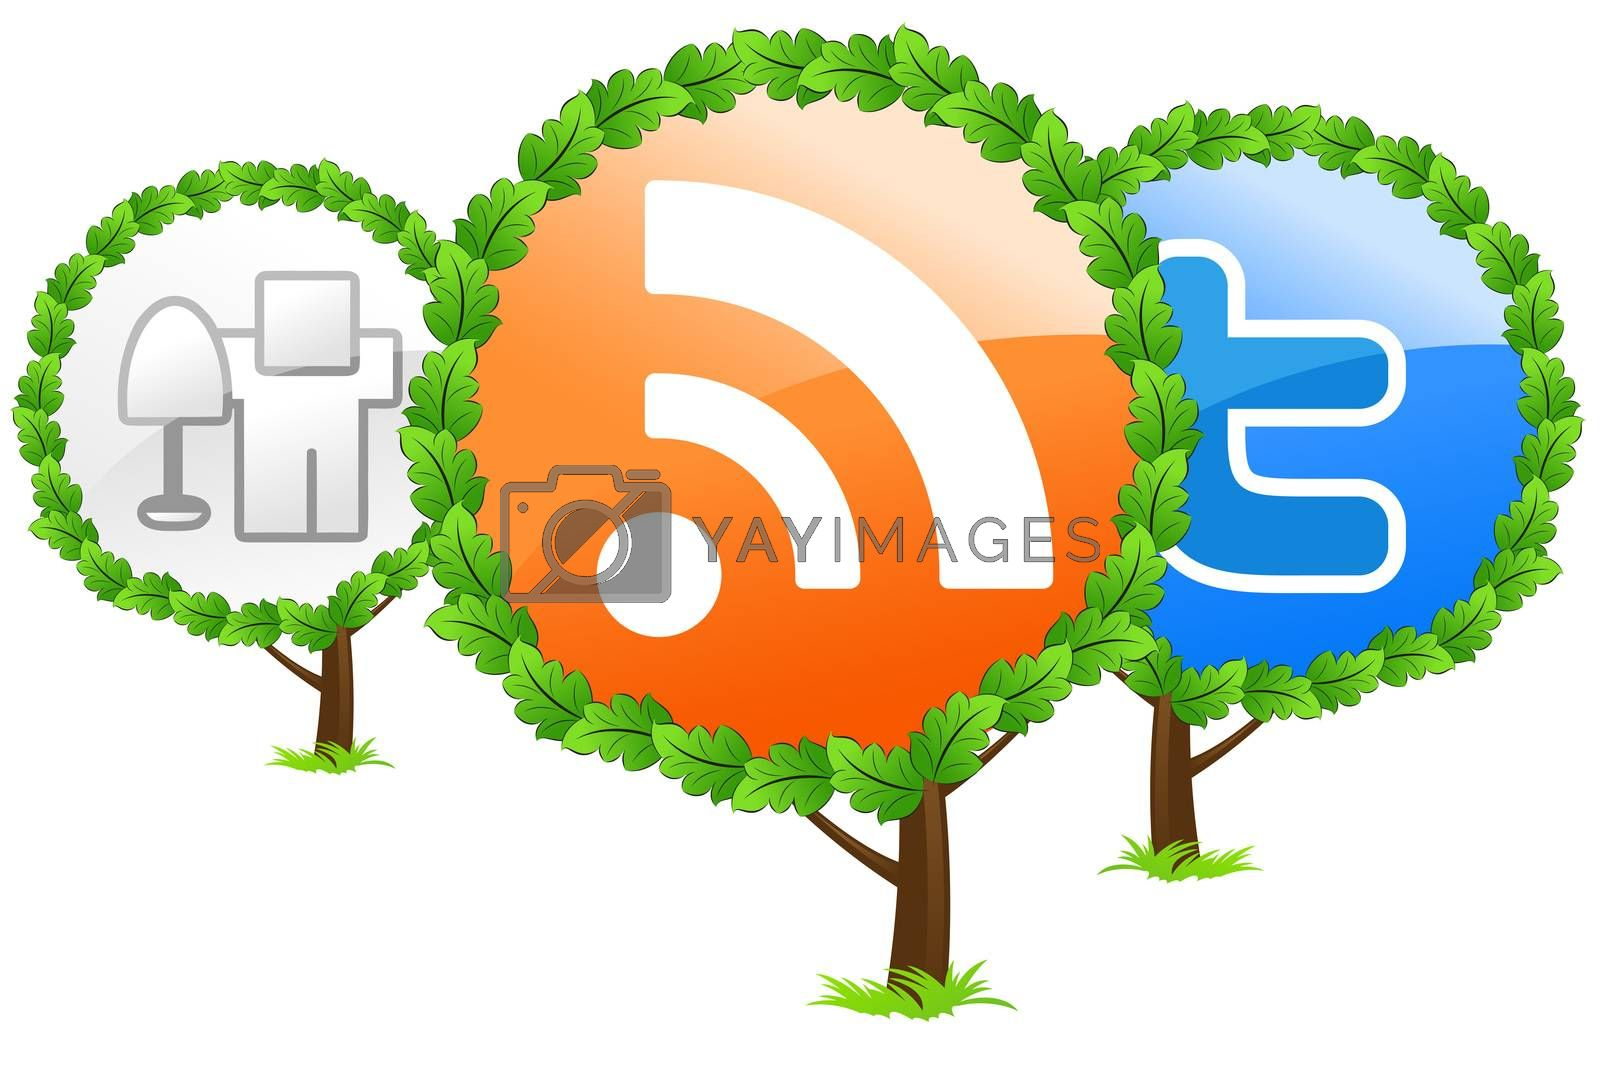 Social media trees icon by WaD